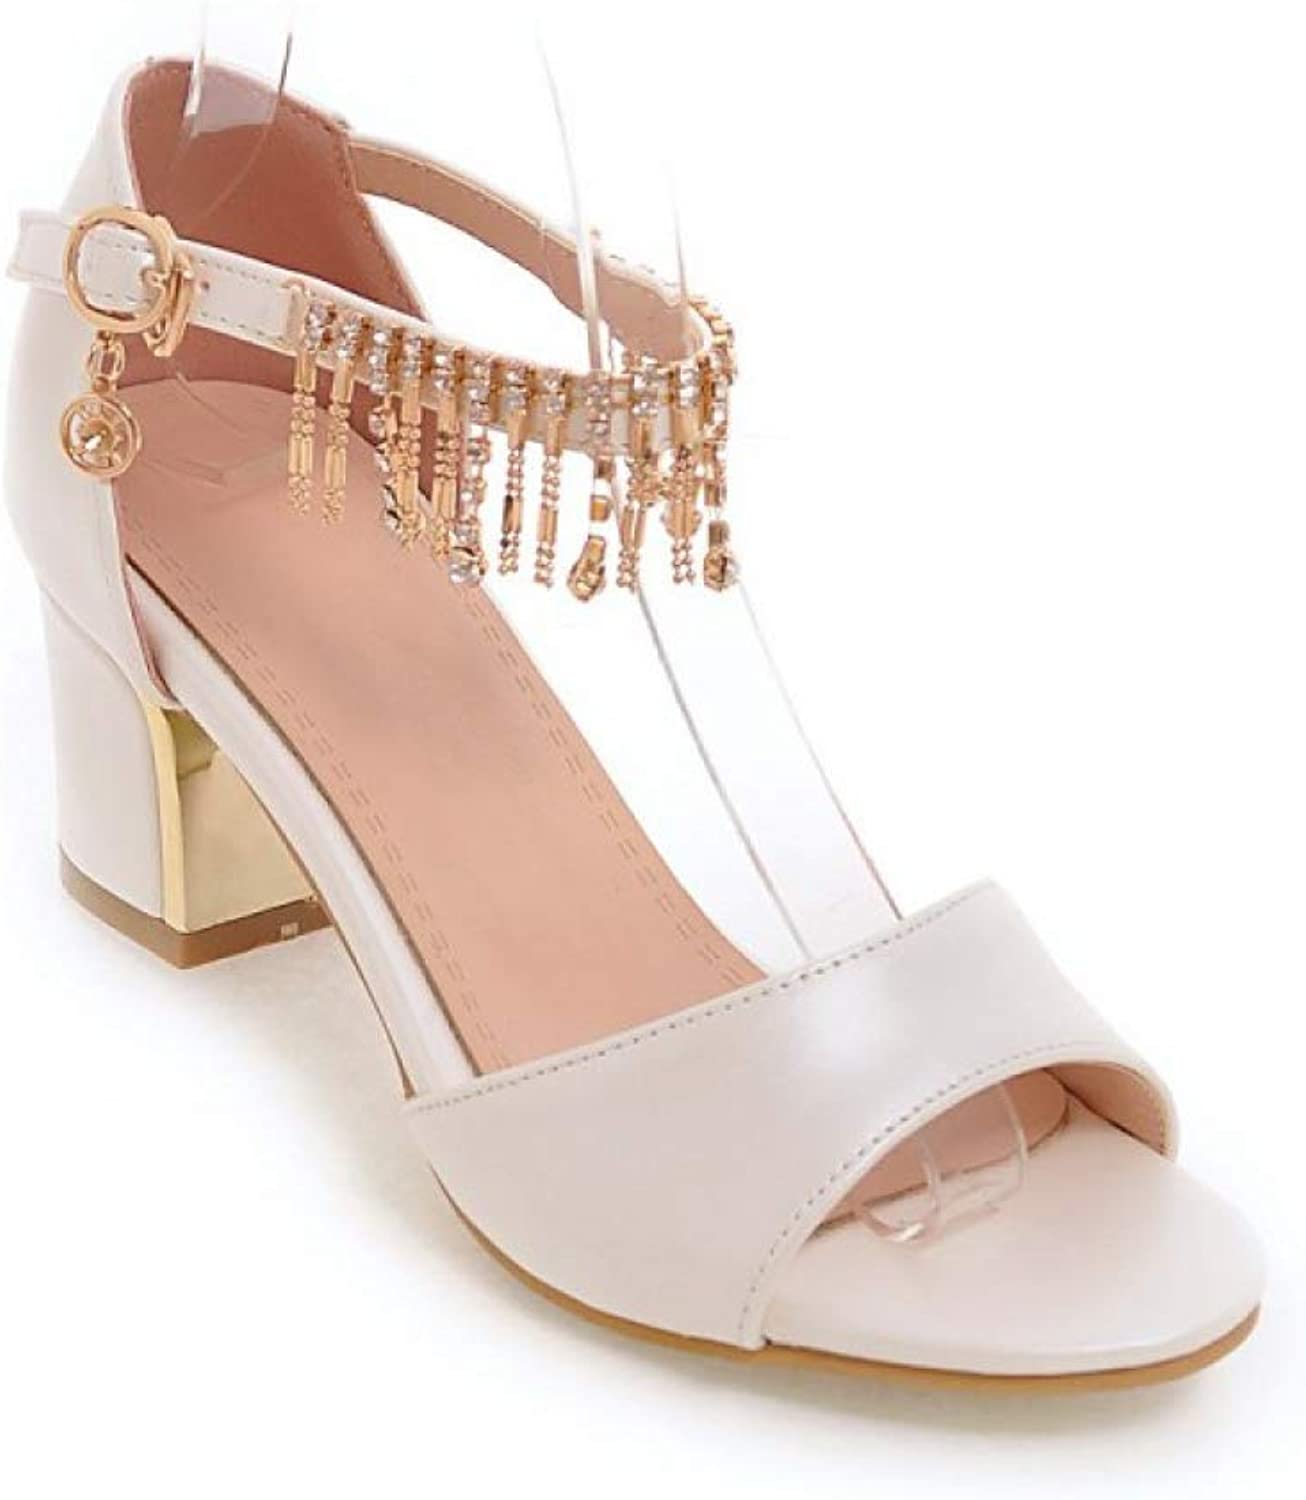 T-JULY Summer Women's High Pumps Ankle Strap Ladies Sandals Pink bluee String Bead Girl's Wedding shoes